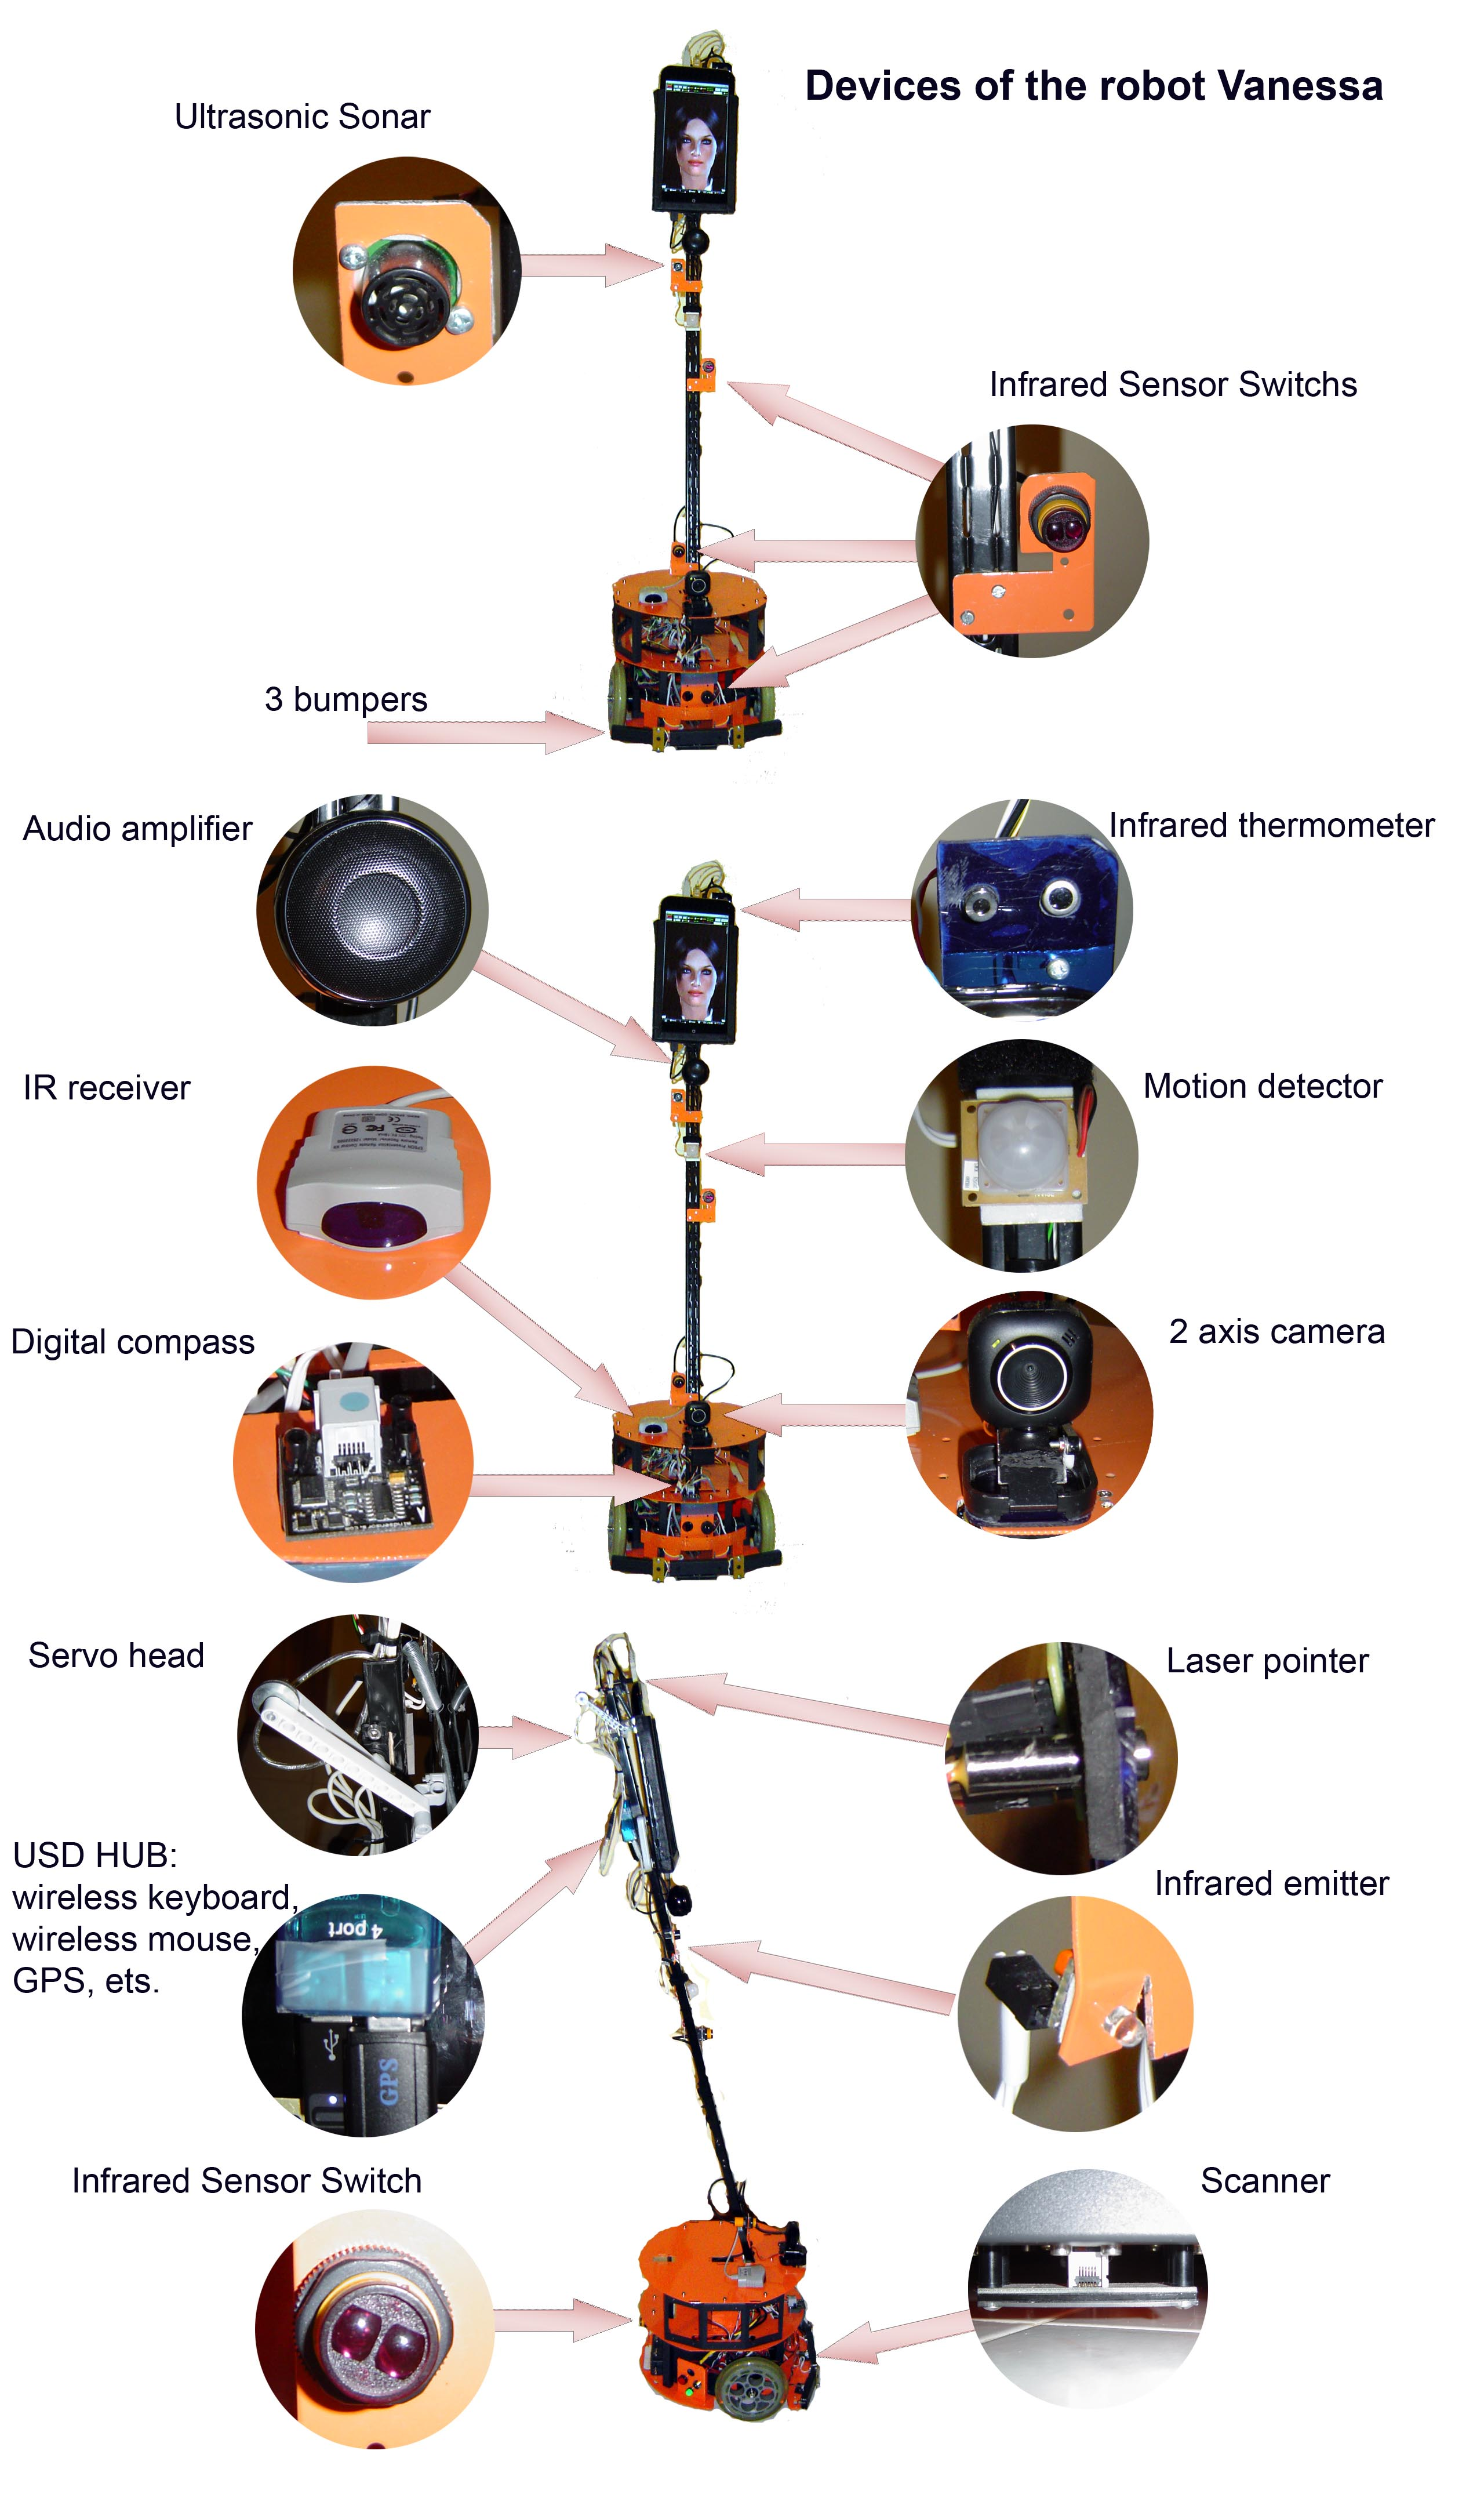 Devices of the robot.jpg